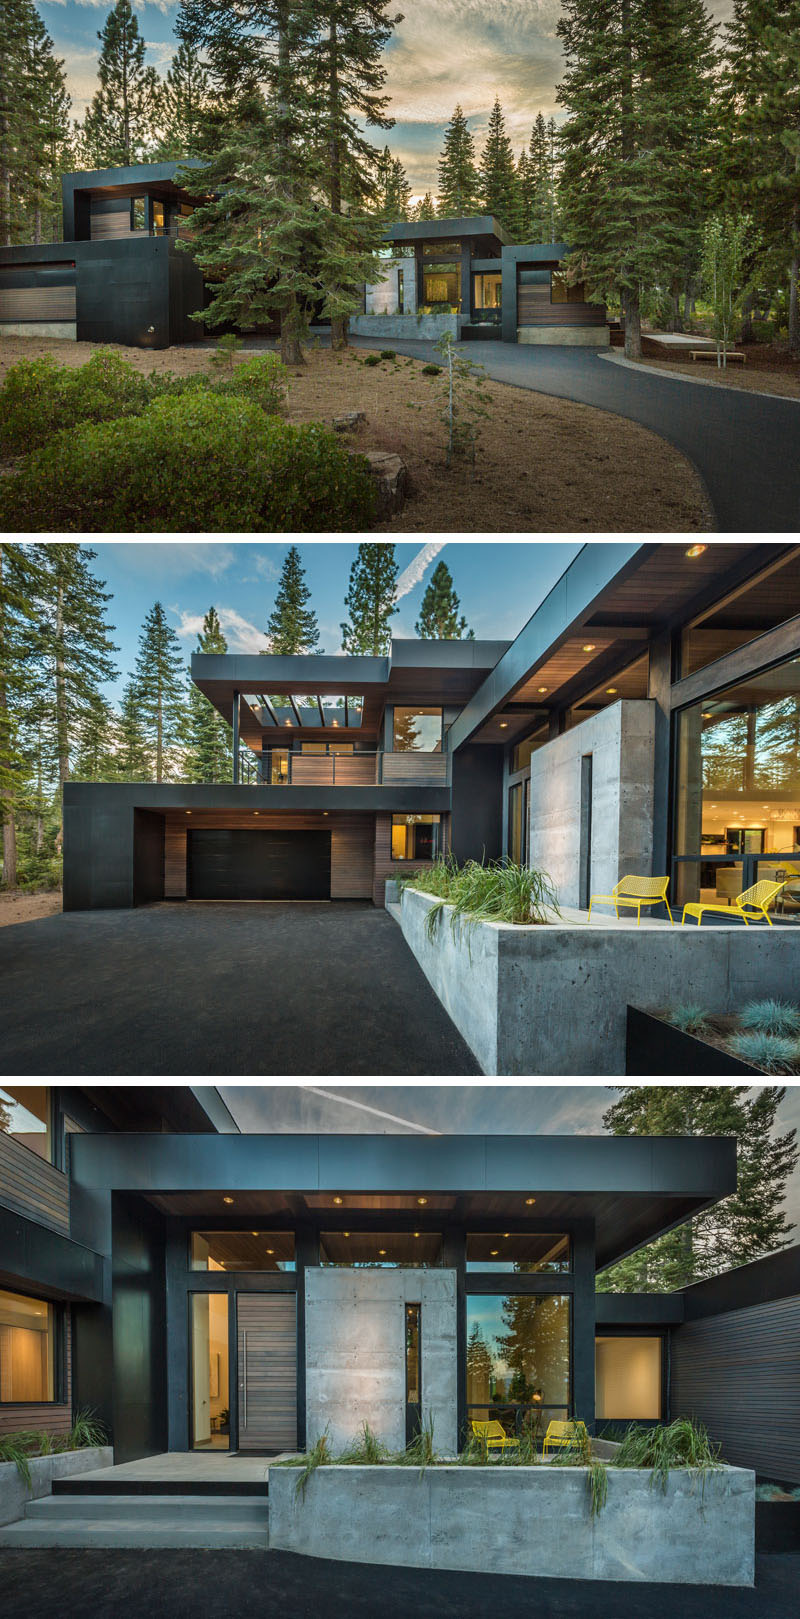 15 modern houses to make you feel at home in the forest